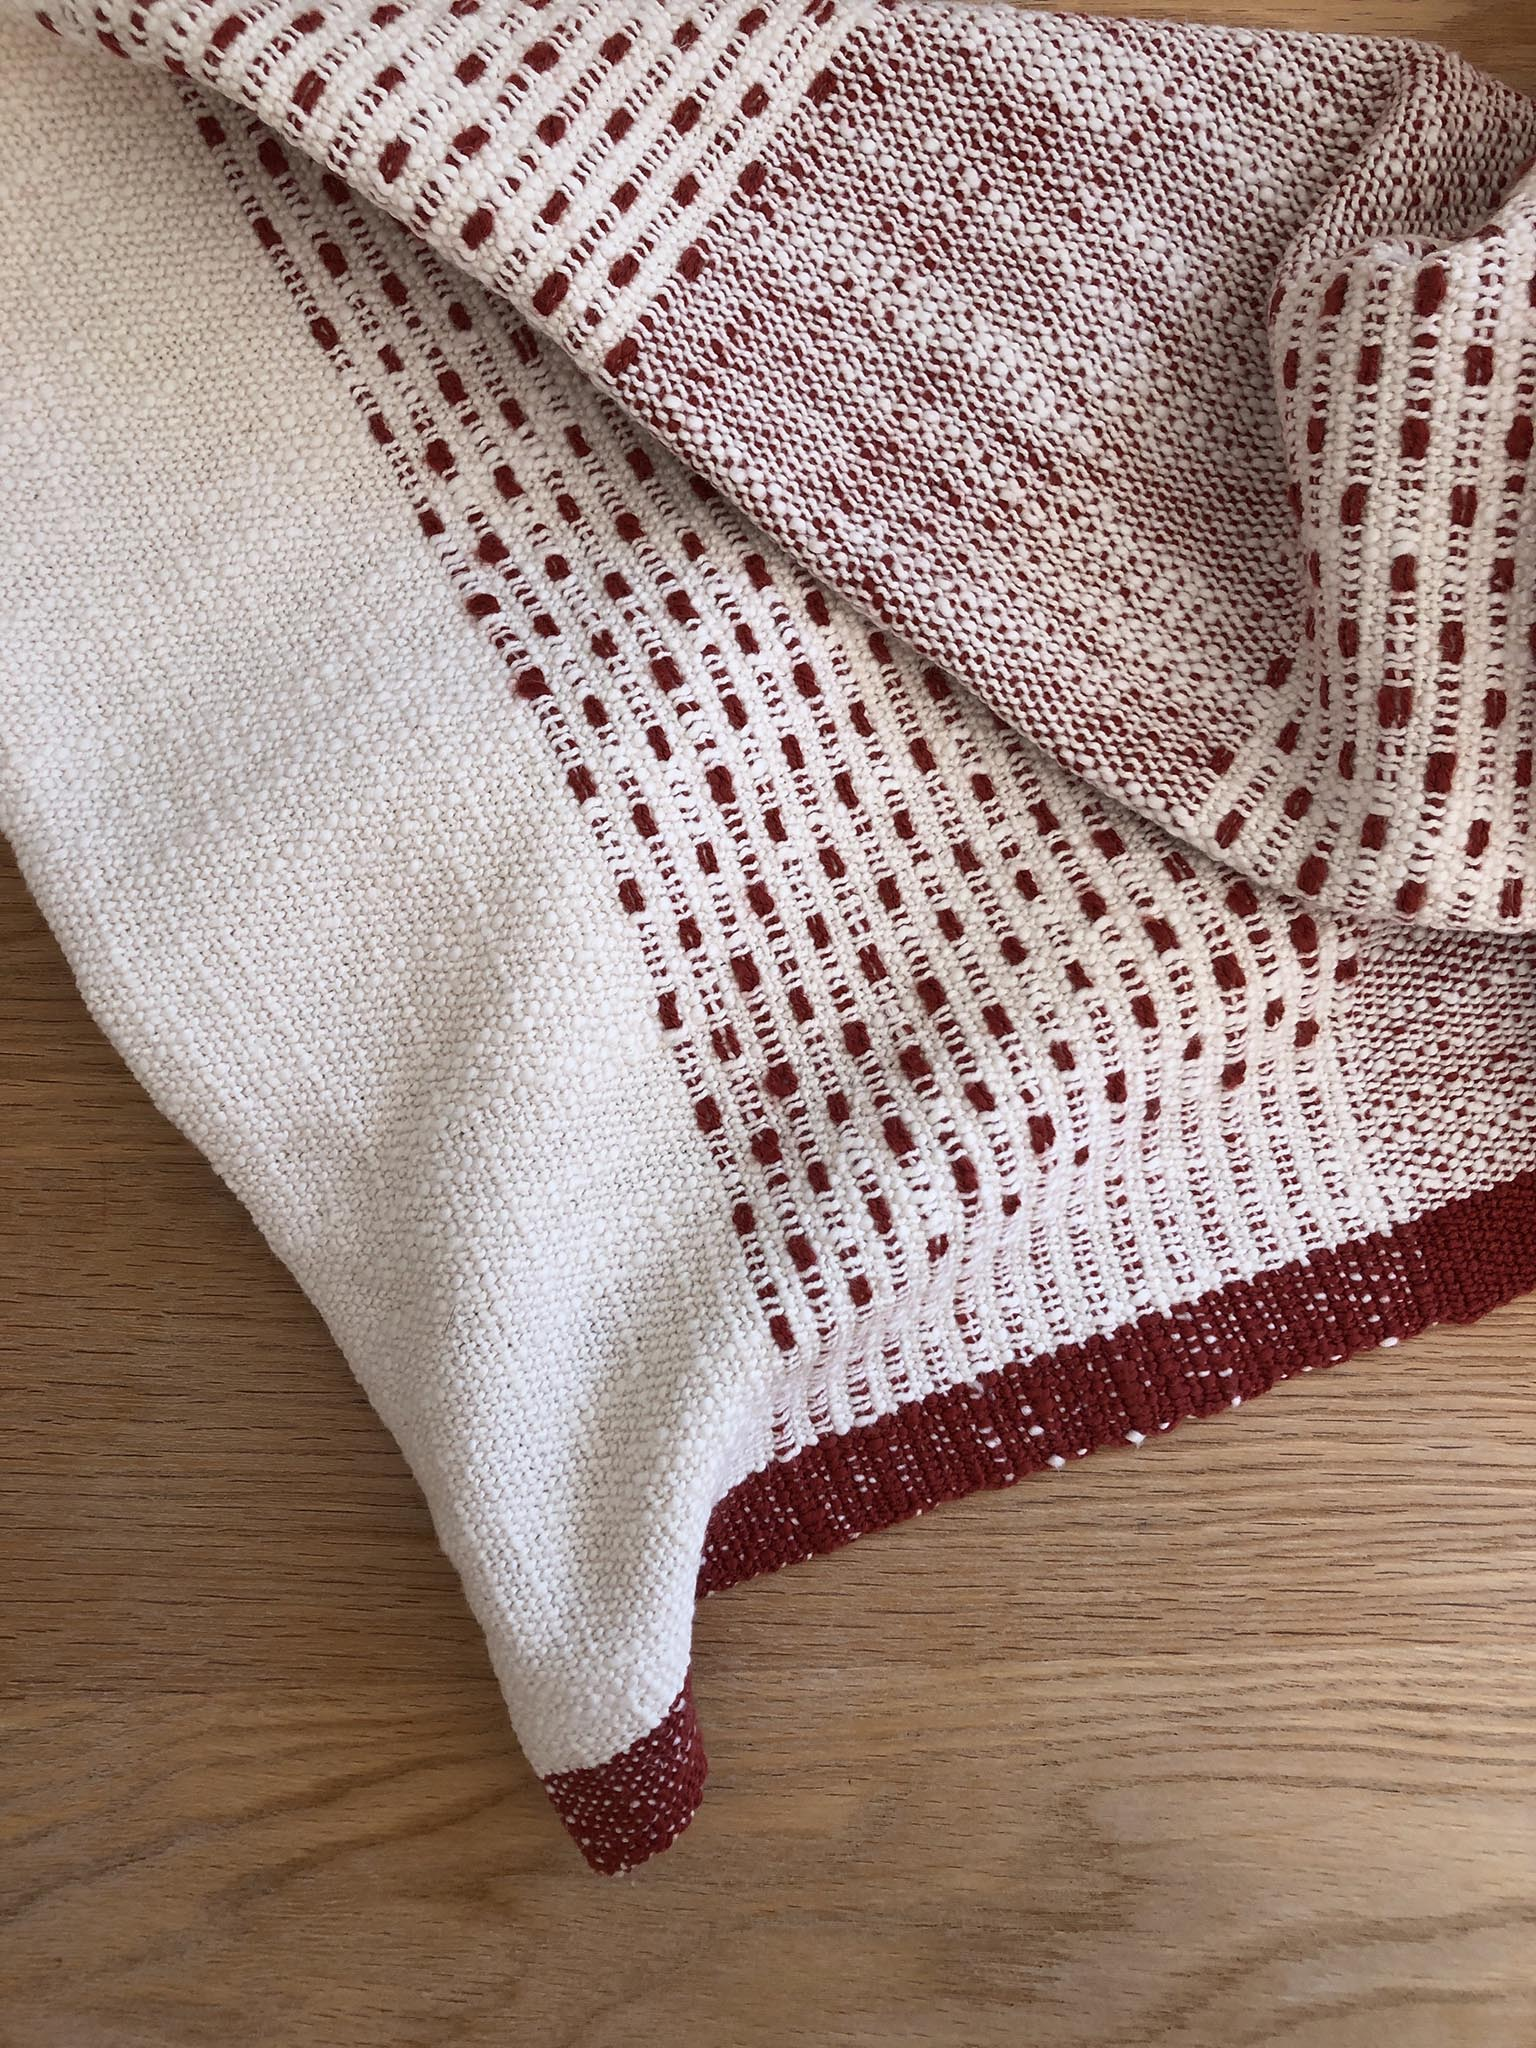 Free Weaving Pattern Droppdräll Towel by Arianna Funk